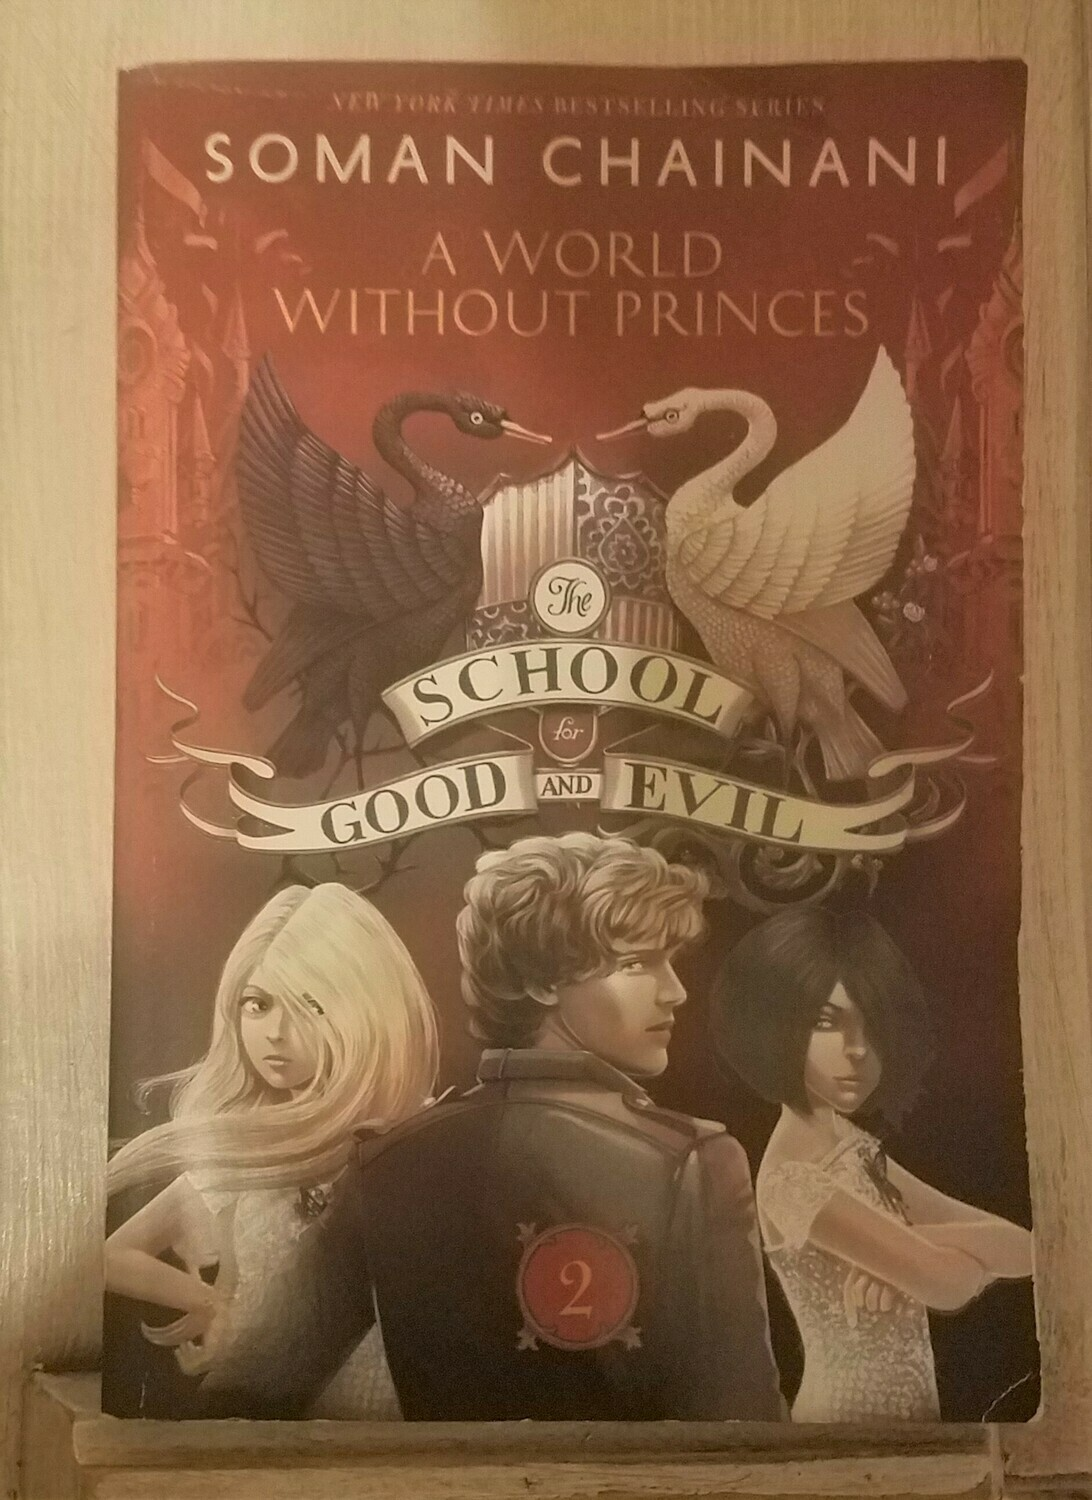 The School for Good and Evil: A World Without Princes by Soman Chainani